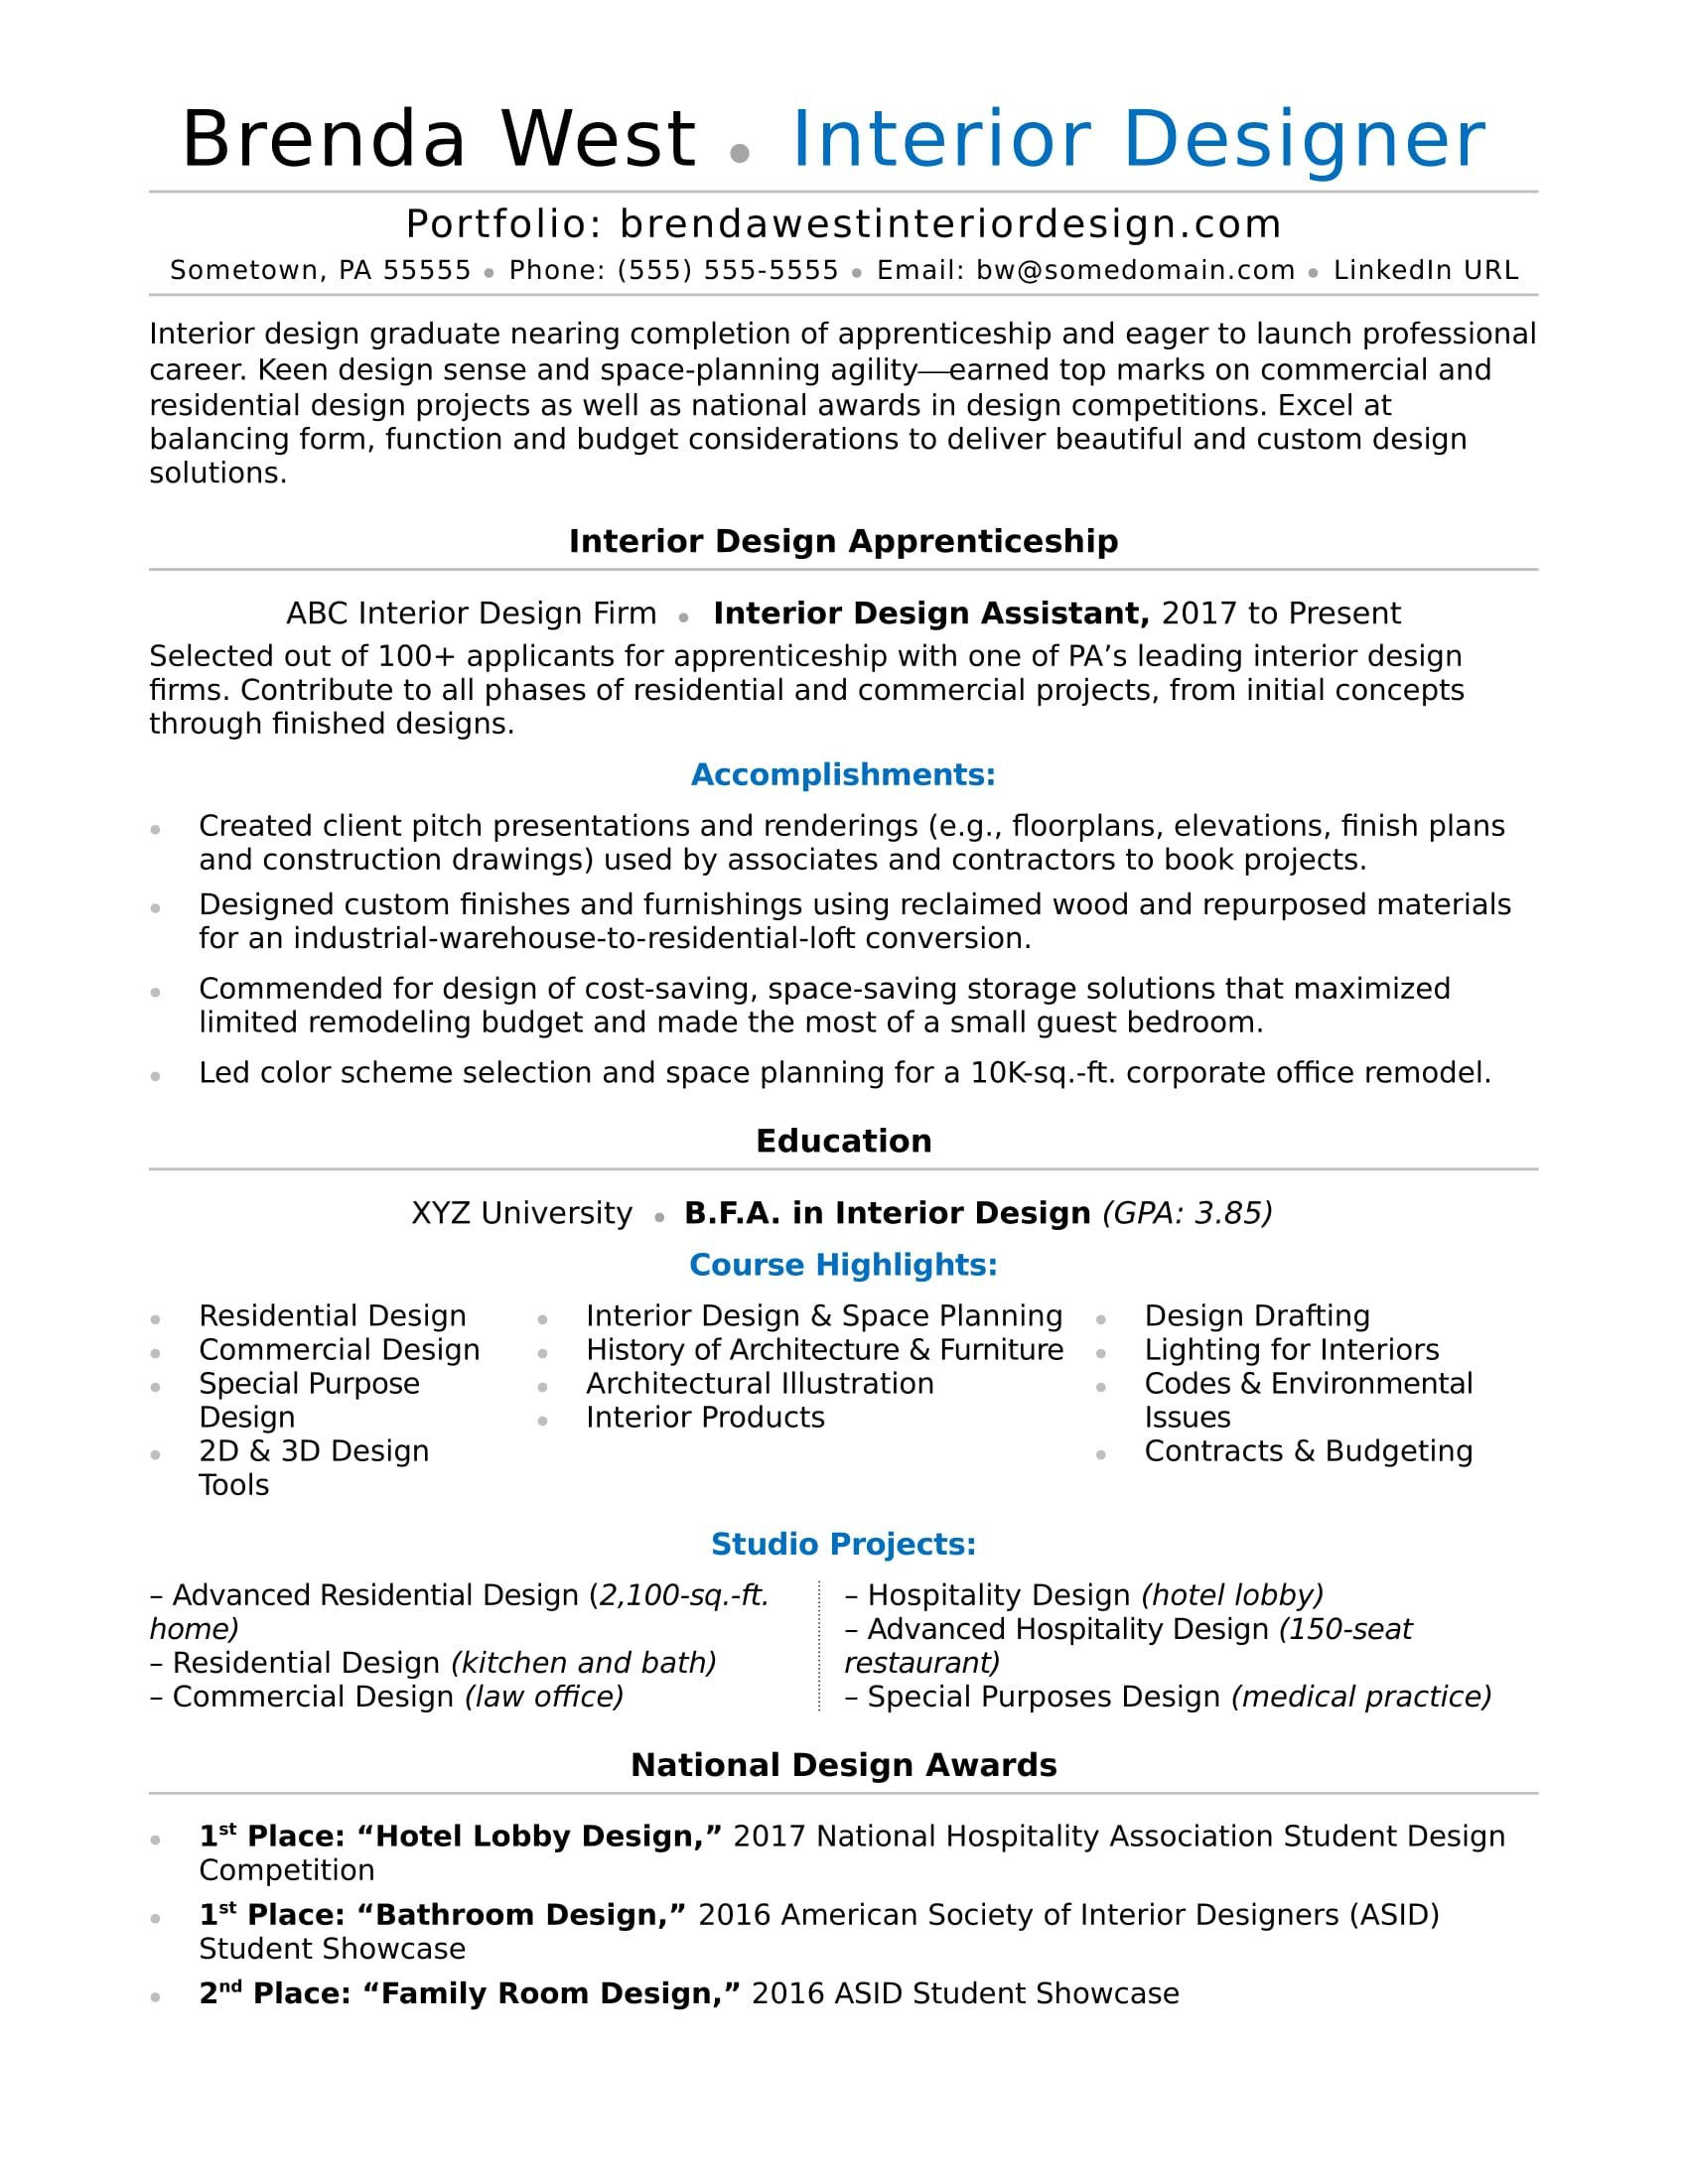 interior design resume sample monster honors and awards examples designer for warehouse Resume Honors And Awards Resume Examples